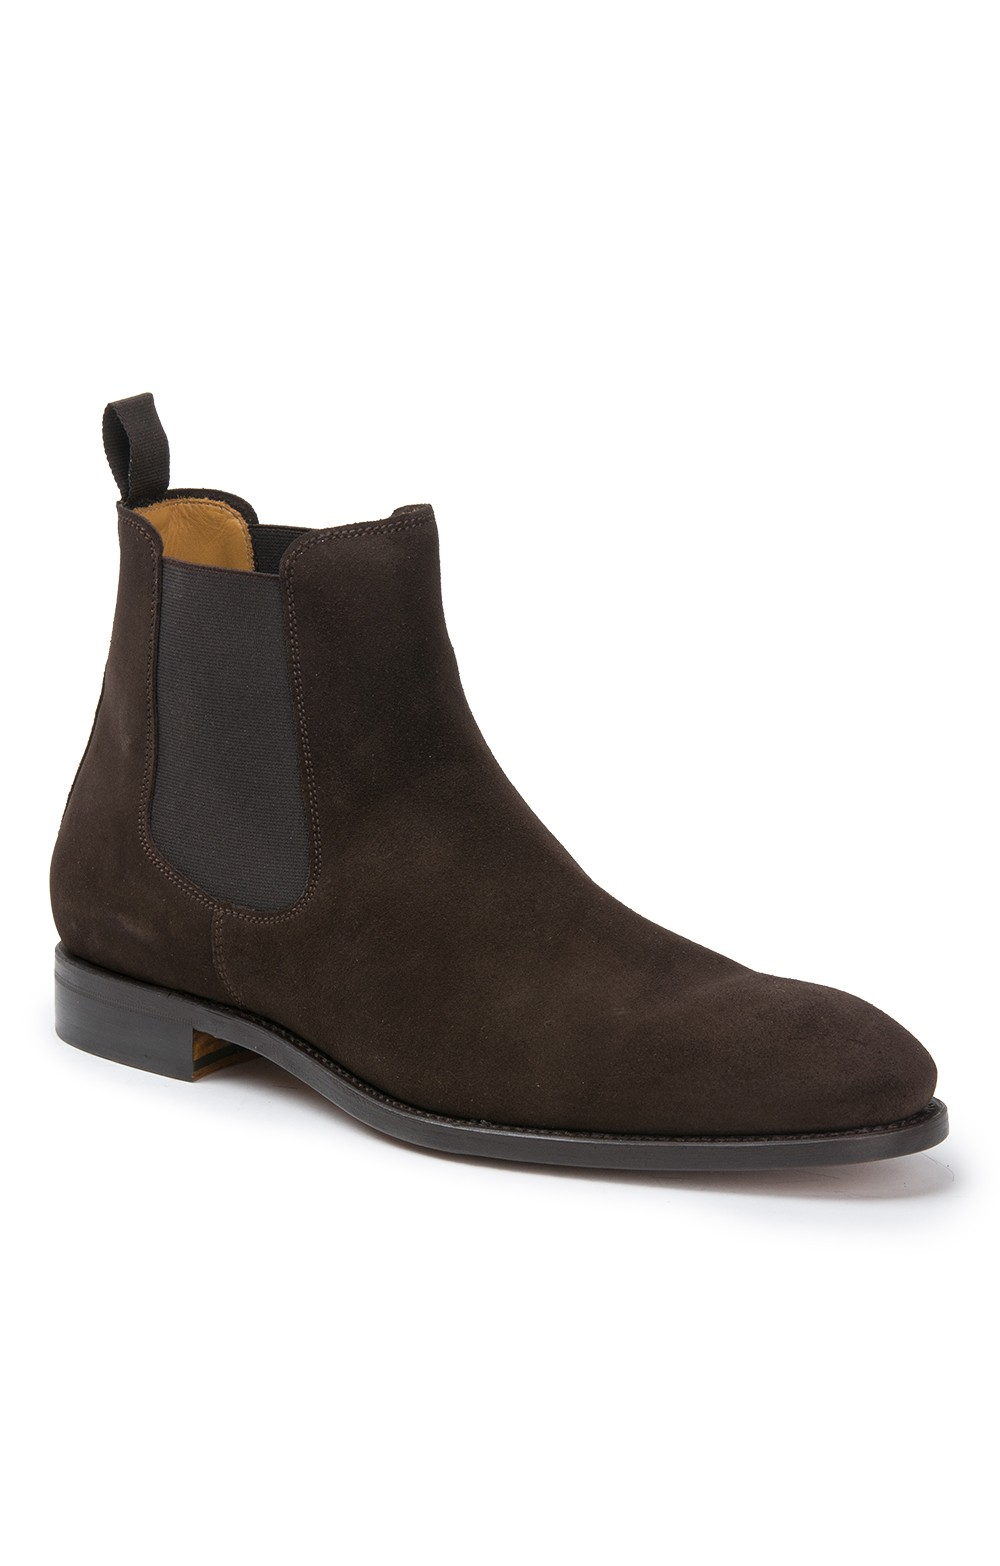 1a2a96b1edf Bruar Suede Chelsea Boot - House of Bruar